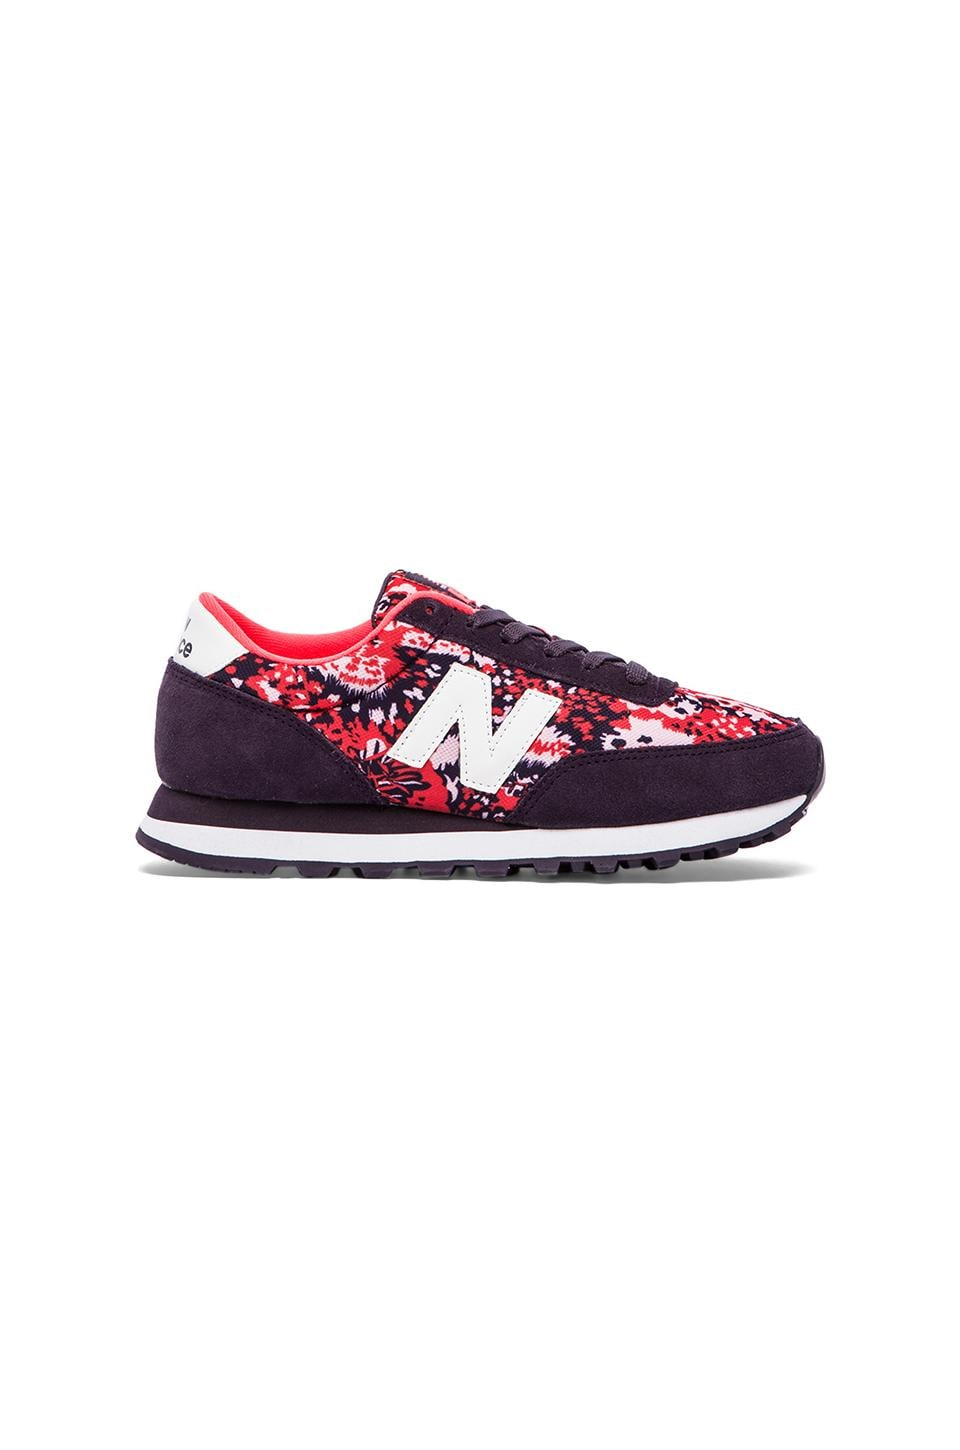 New Balance Camo Sneakers in Elderberry